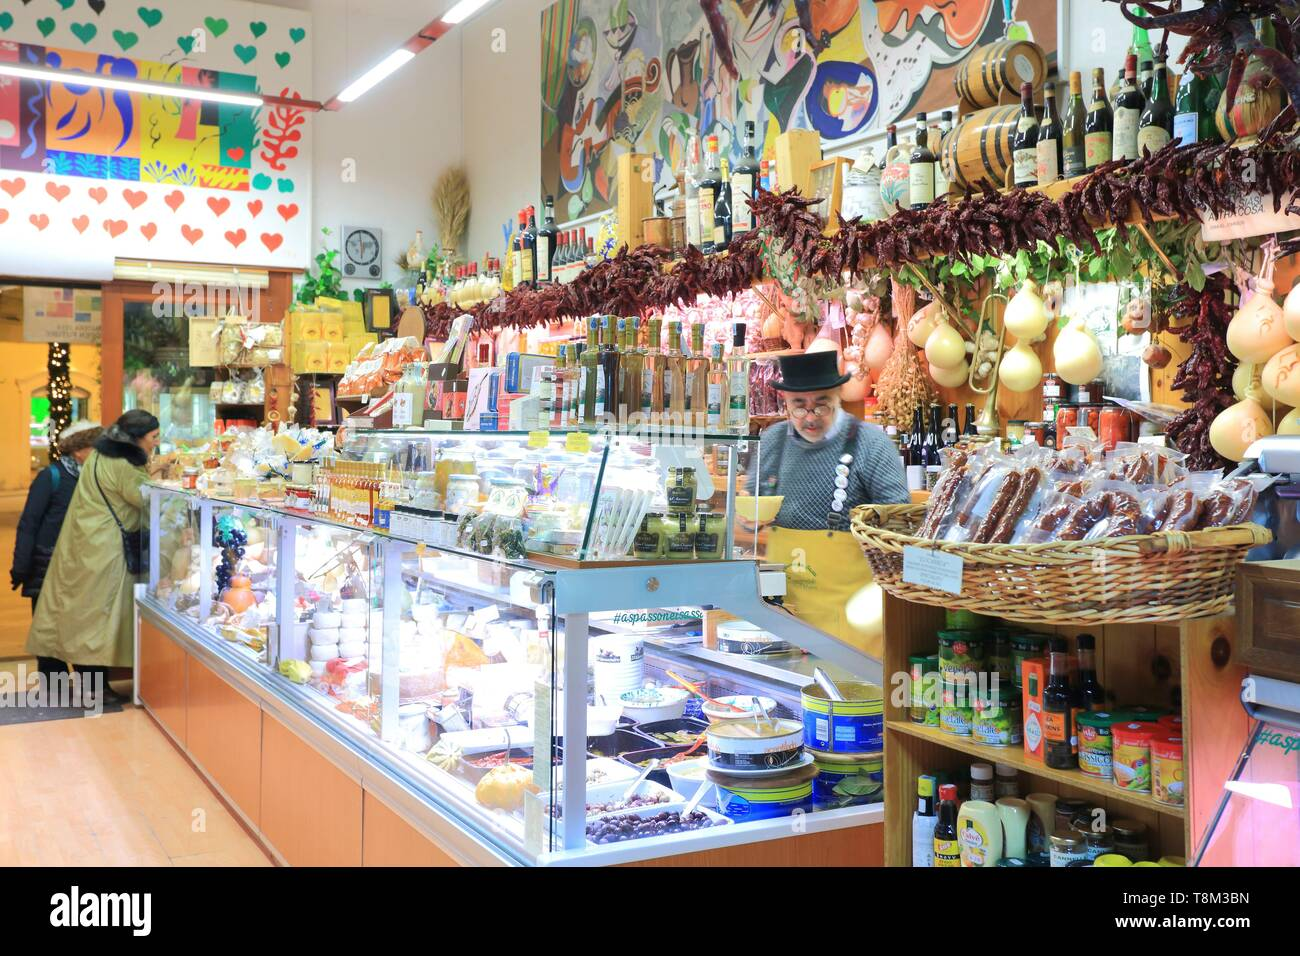 Italy, Basilicata, Matera, European Capital of Culture 2019, Piazza Vittorio Veneto, Il Buongustaio, delicatessen specializing in products from the region Stock Photo